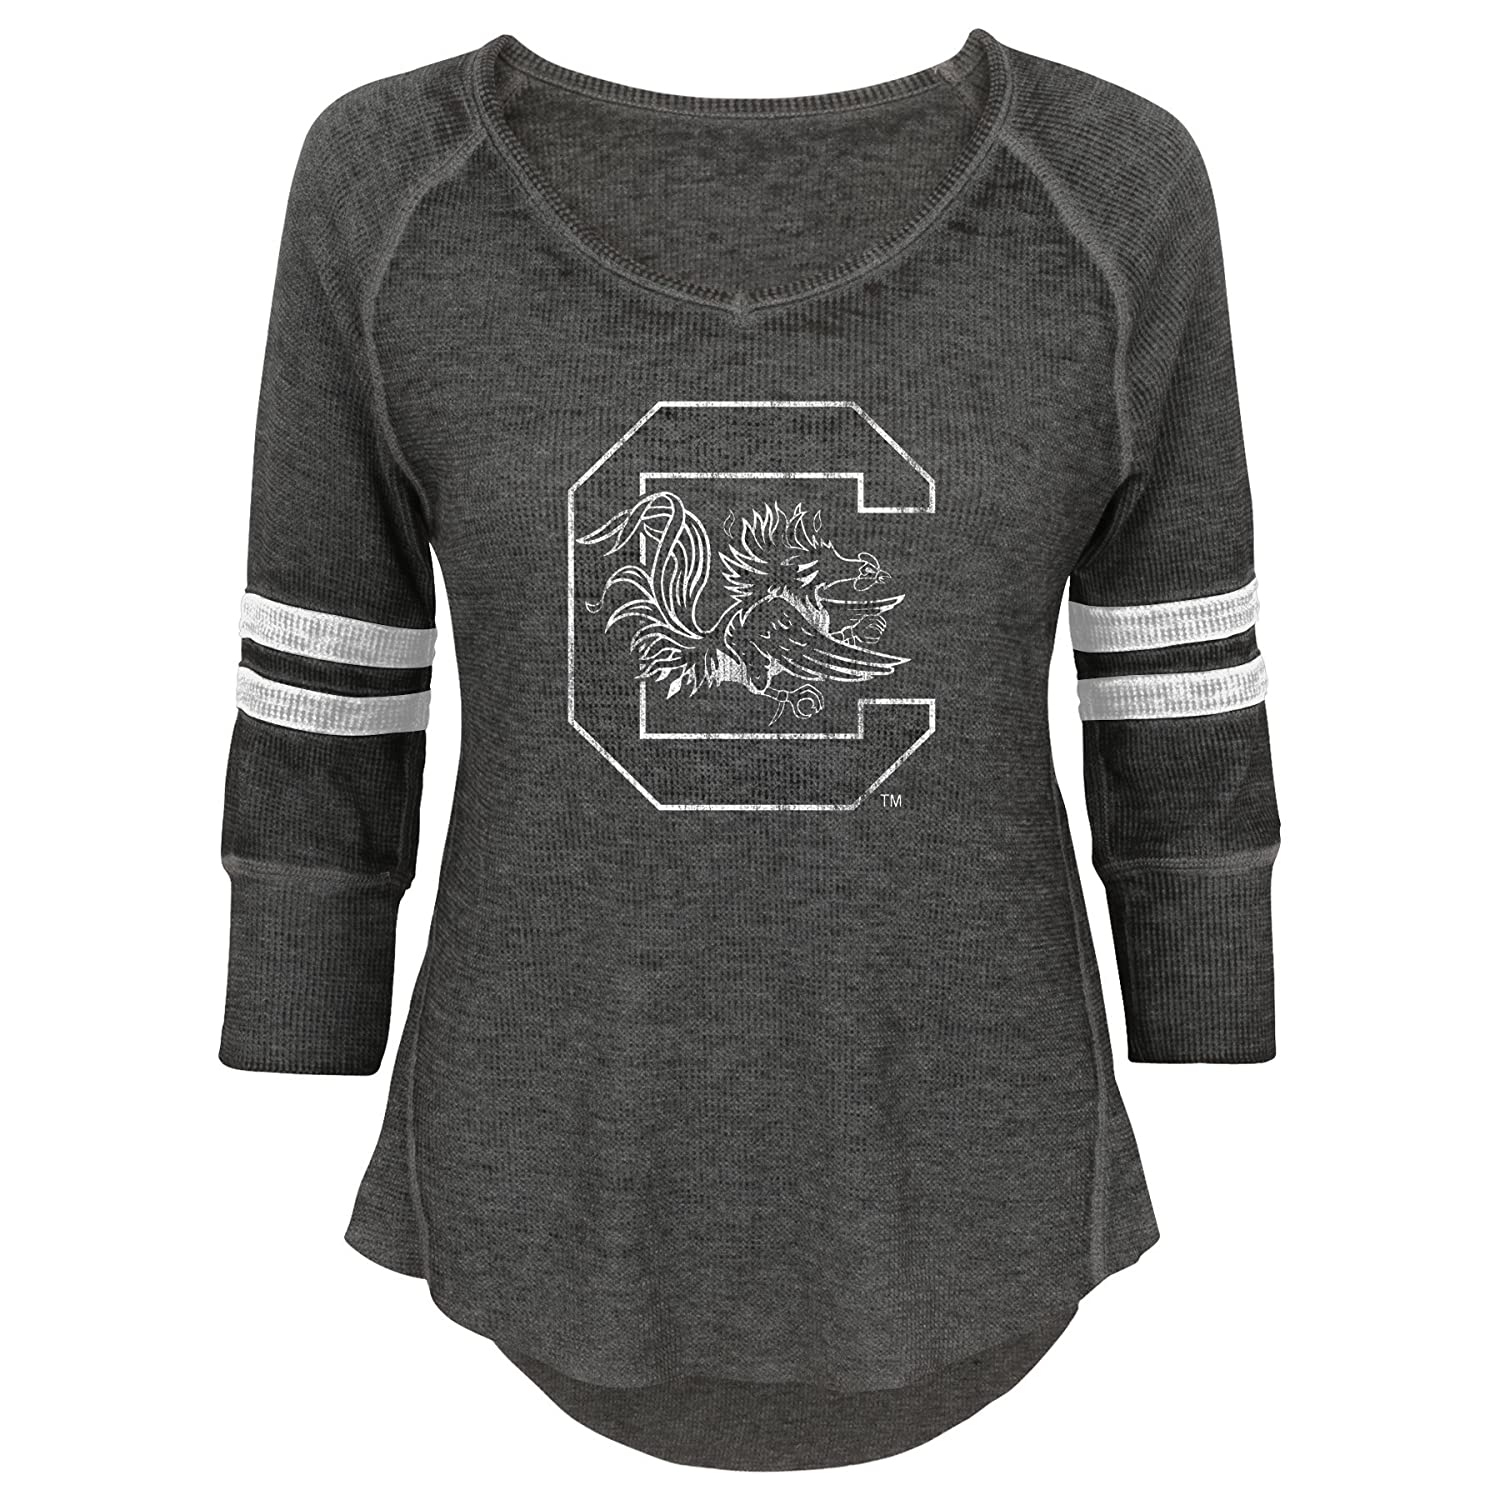 11-13 NCAA South Carolina Fighting Gamecocks Juniors Outerstuff Relaxed 3//4 Raglan Thermal Top Team Color Large